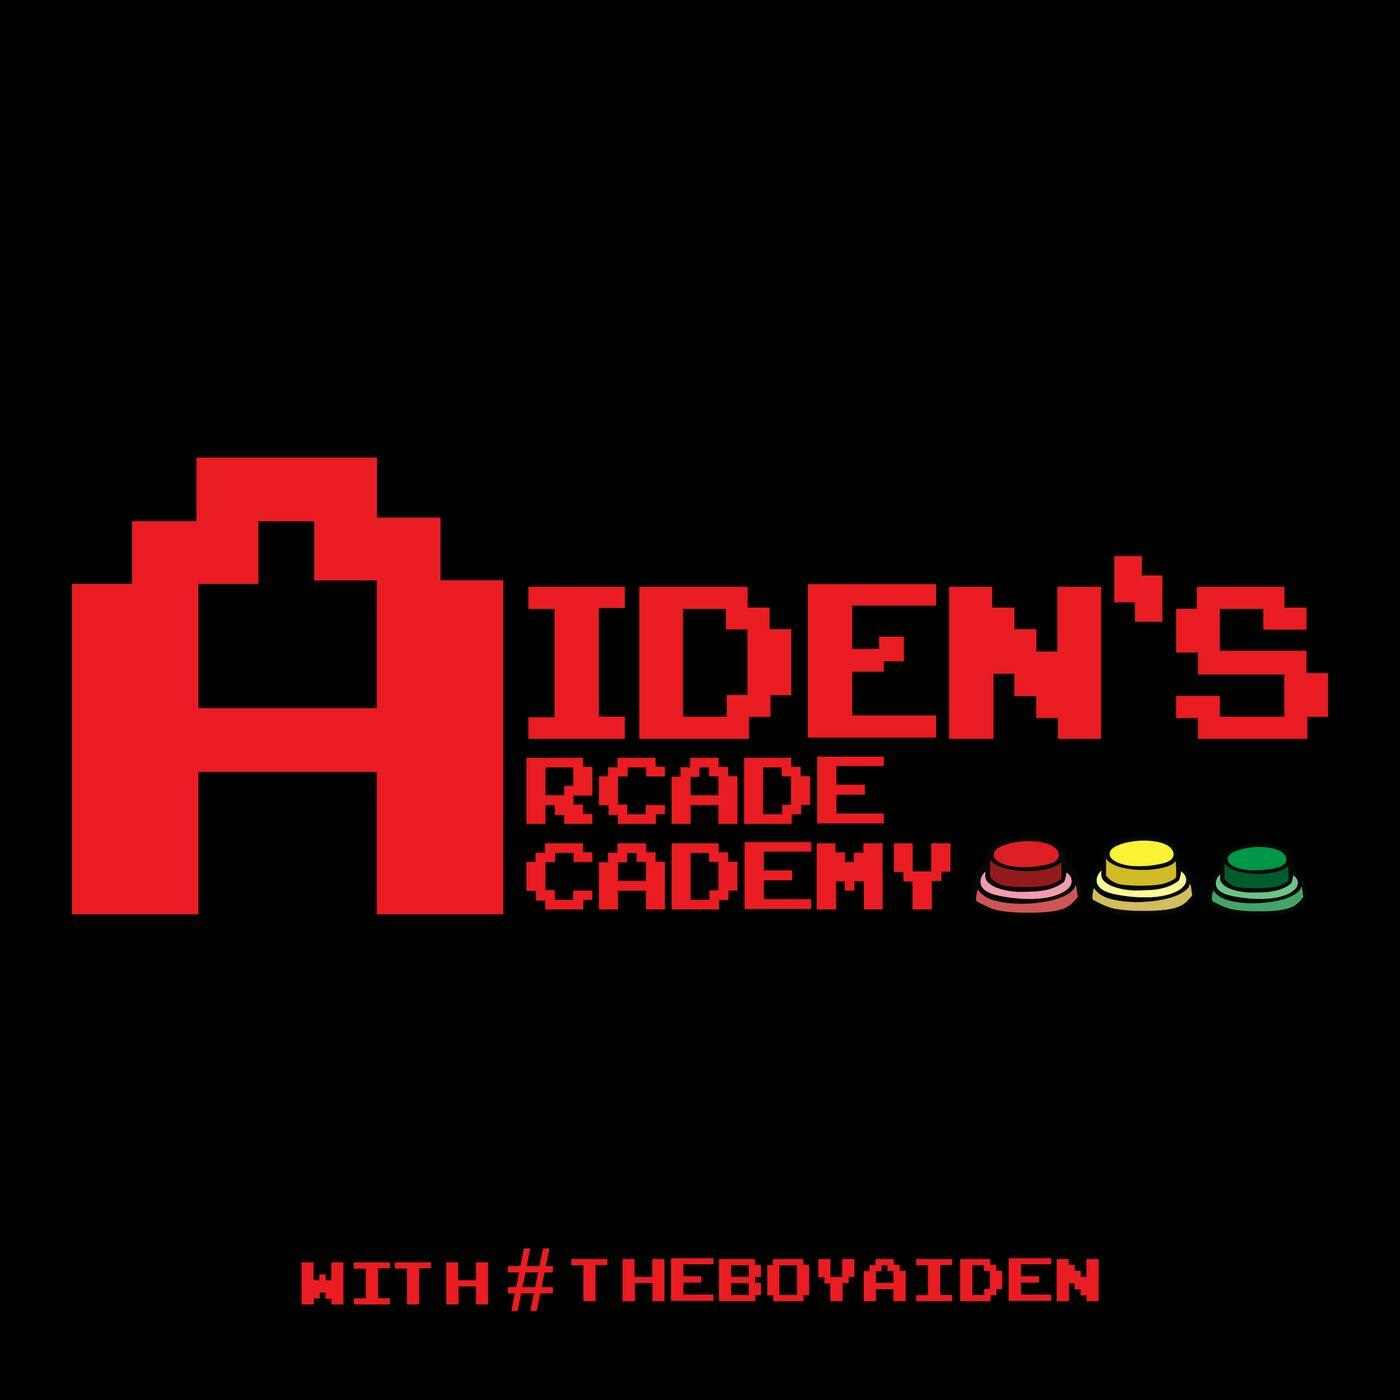 Listen to the Aiden's Arcade Academy Episode - Roblox on iHeartRadio | iHeartRadio